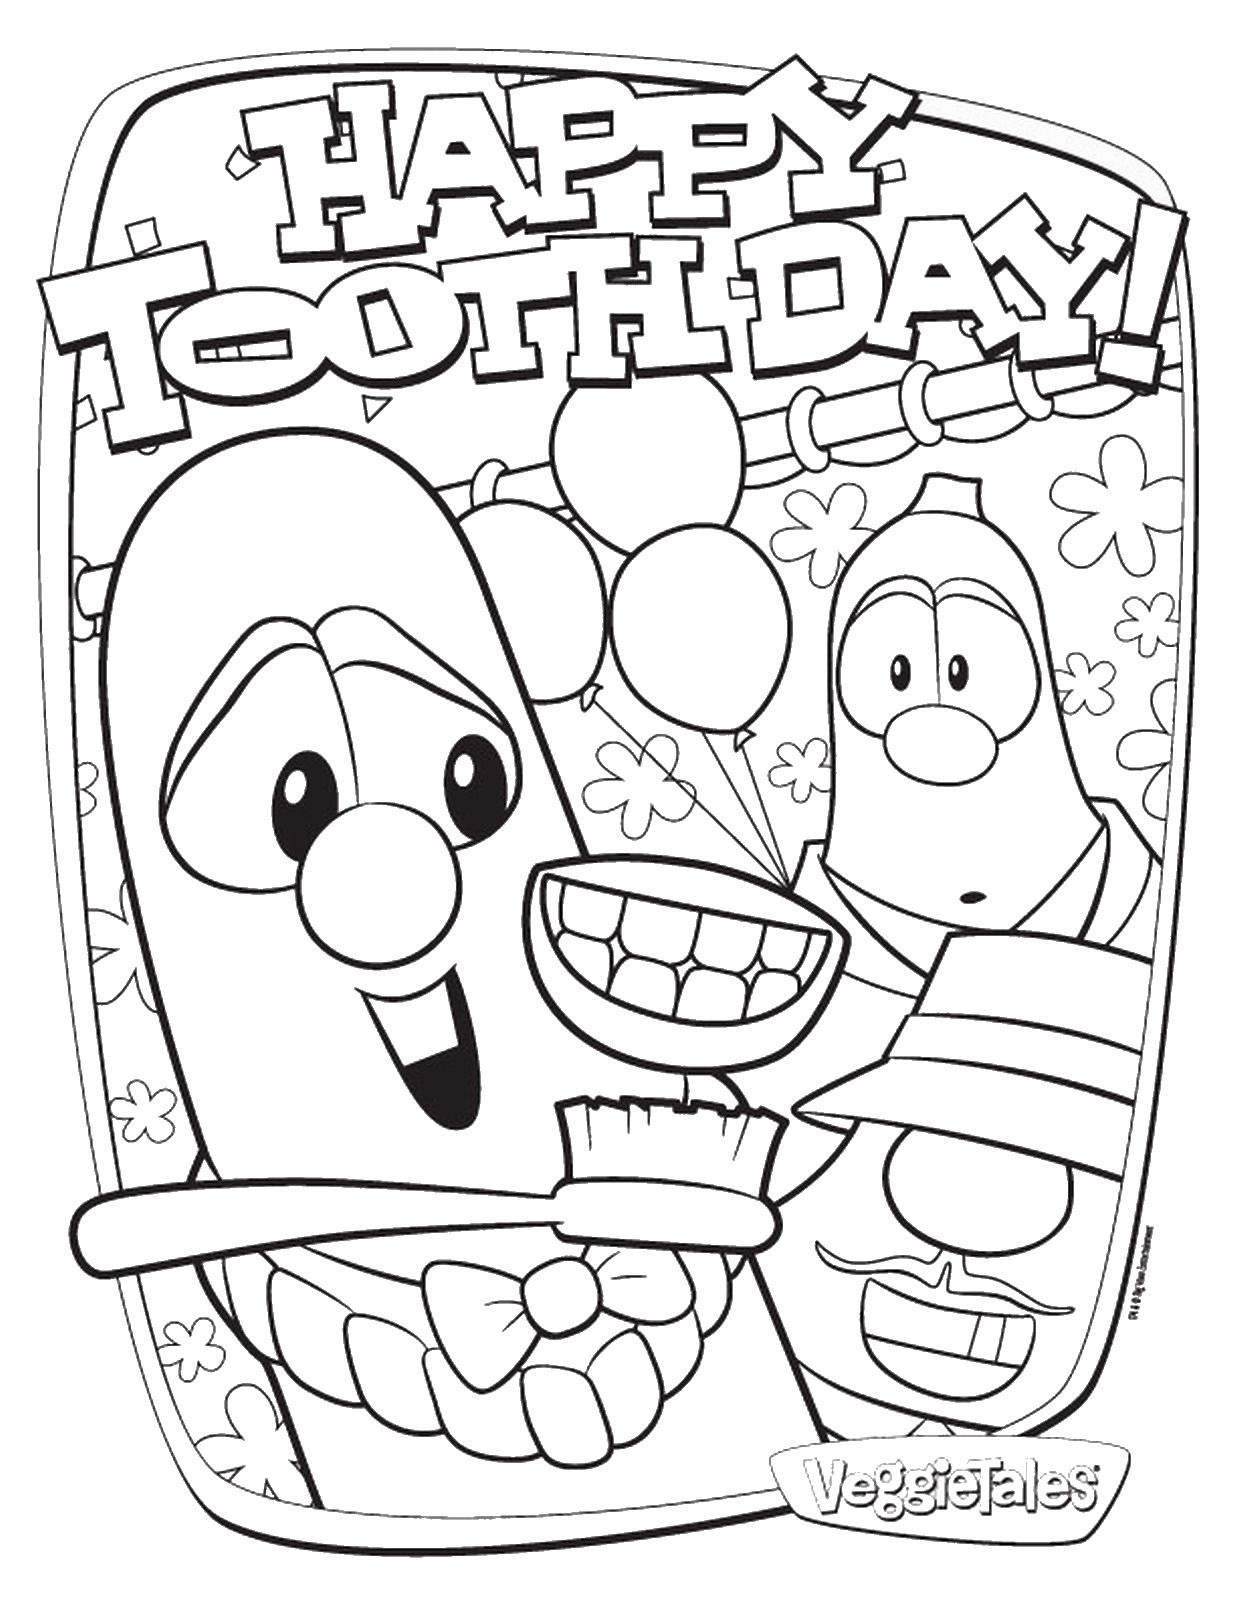 veggie tales coloring pages esther - photo#11